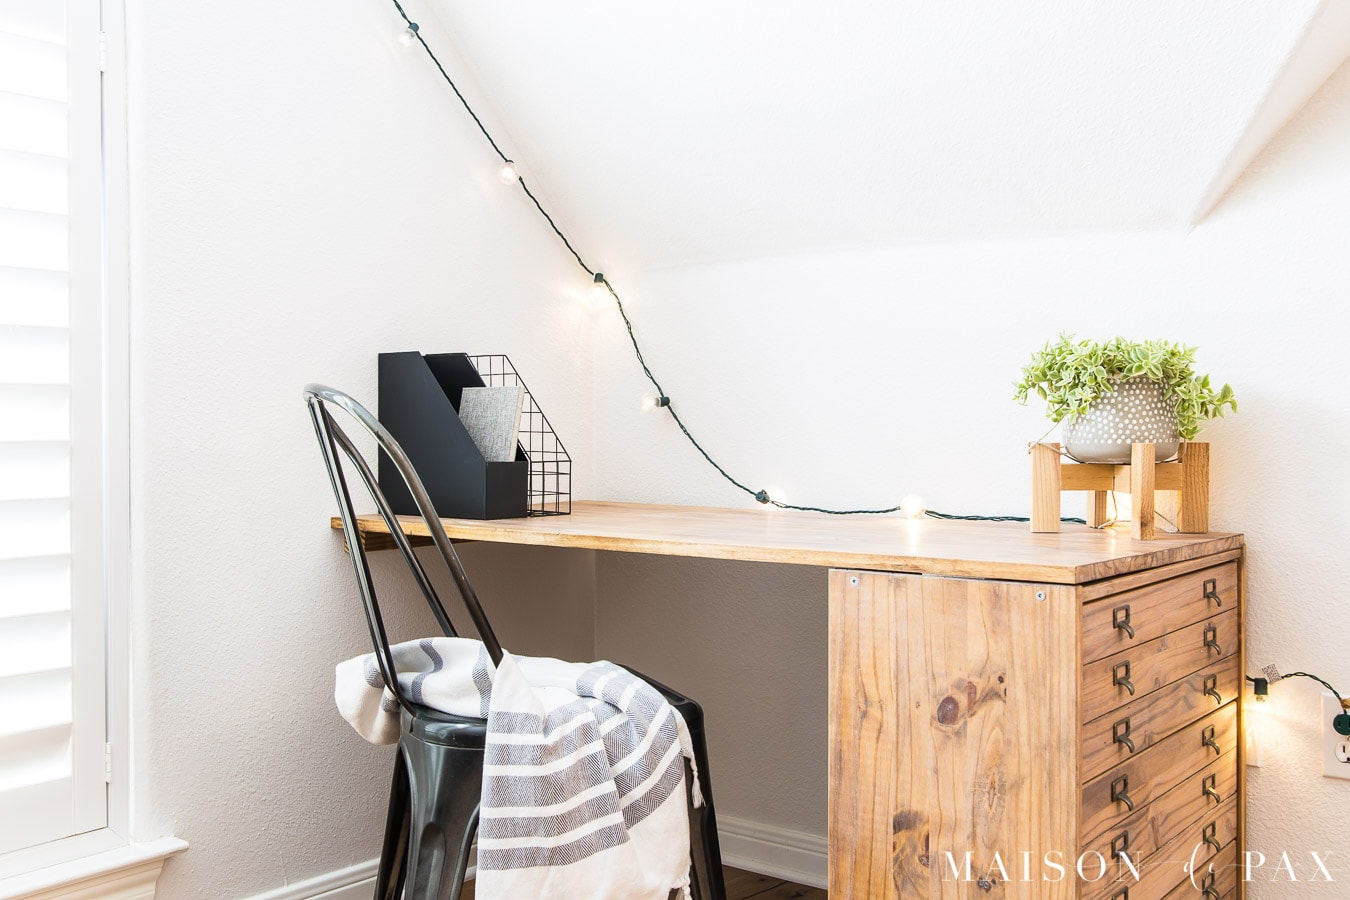 simple rustic wooden desk with dresser on one end | Maison de Pax